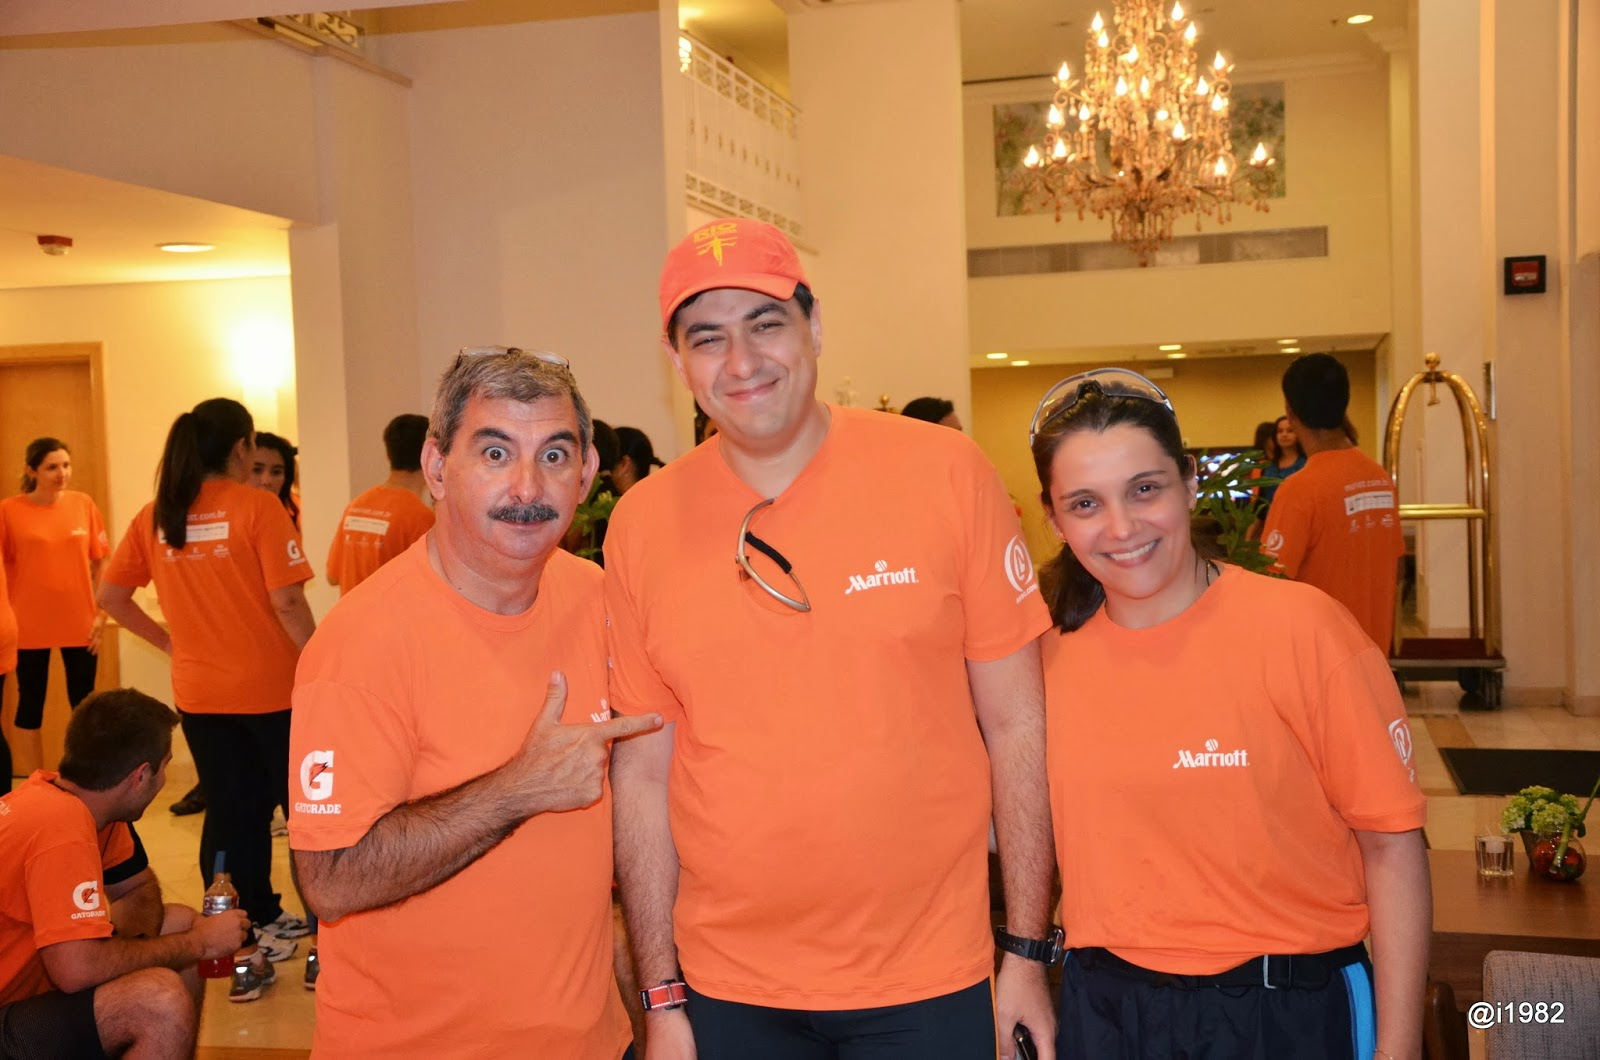 Global Customer Appreciation Week 2013 - Caminhada e Corrida GCAW 2013 - Marriott Hotels